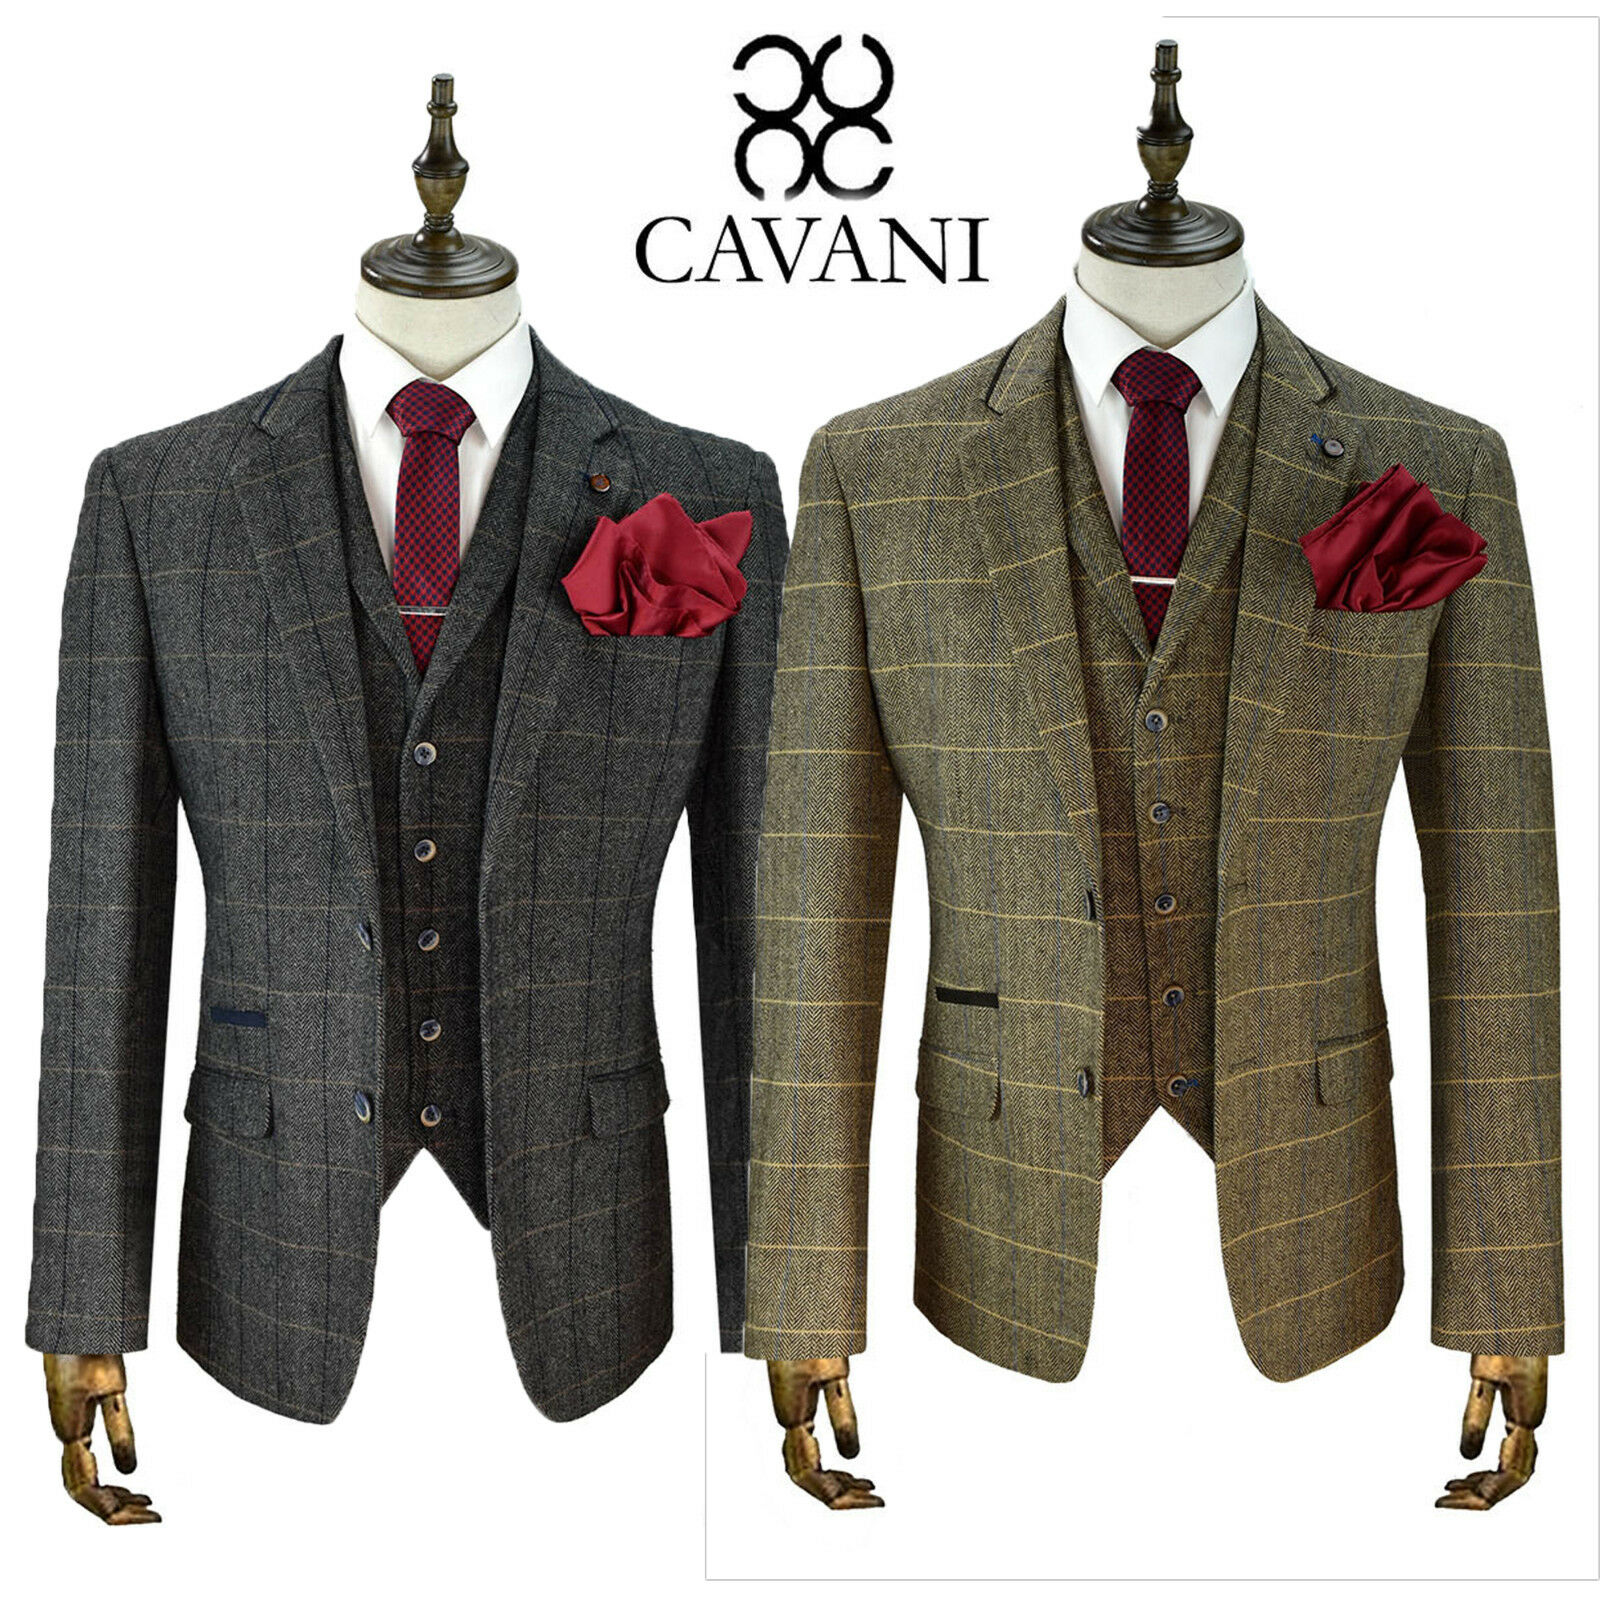 Men's waistcoats Ideal for special occasions, give your formal look the perfect finishing touch with a sophisticated waistcoat. Our range includes styles in black, grey or blue, so you can find the perfect match for your favourite two piece suits.